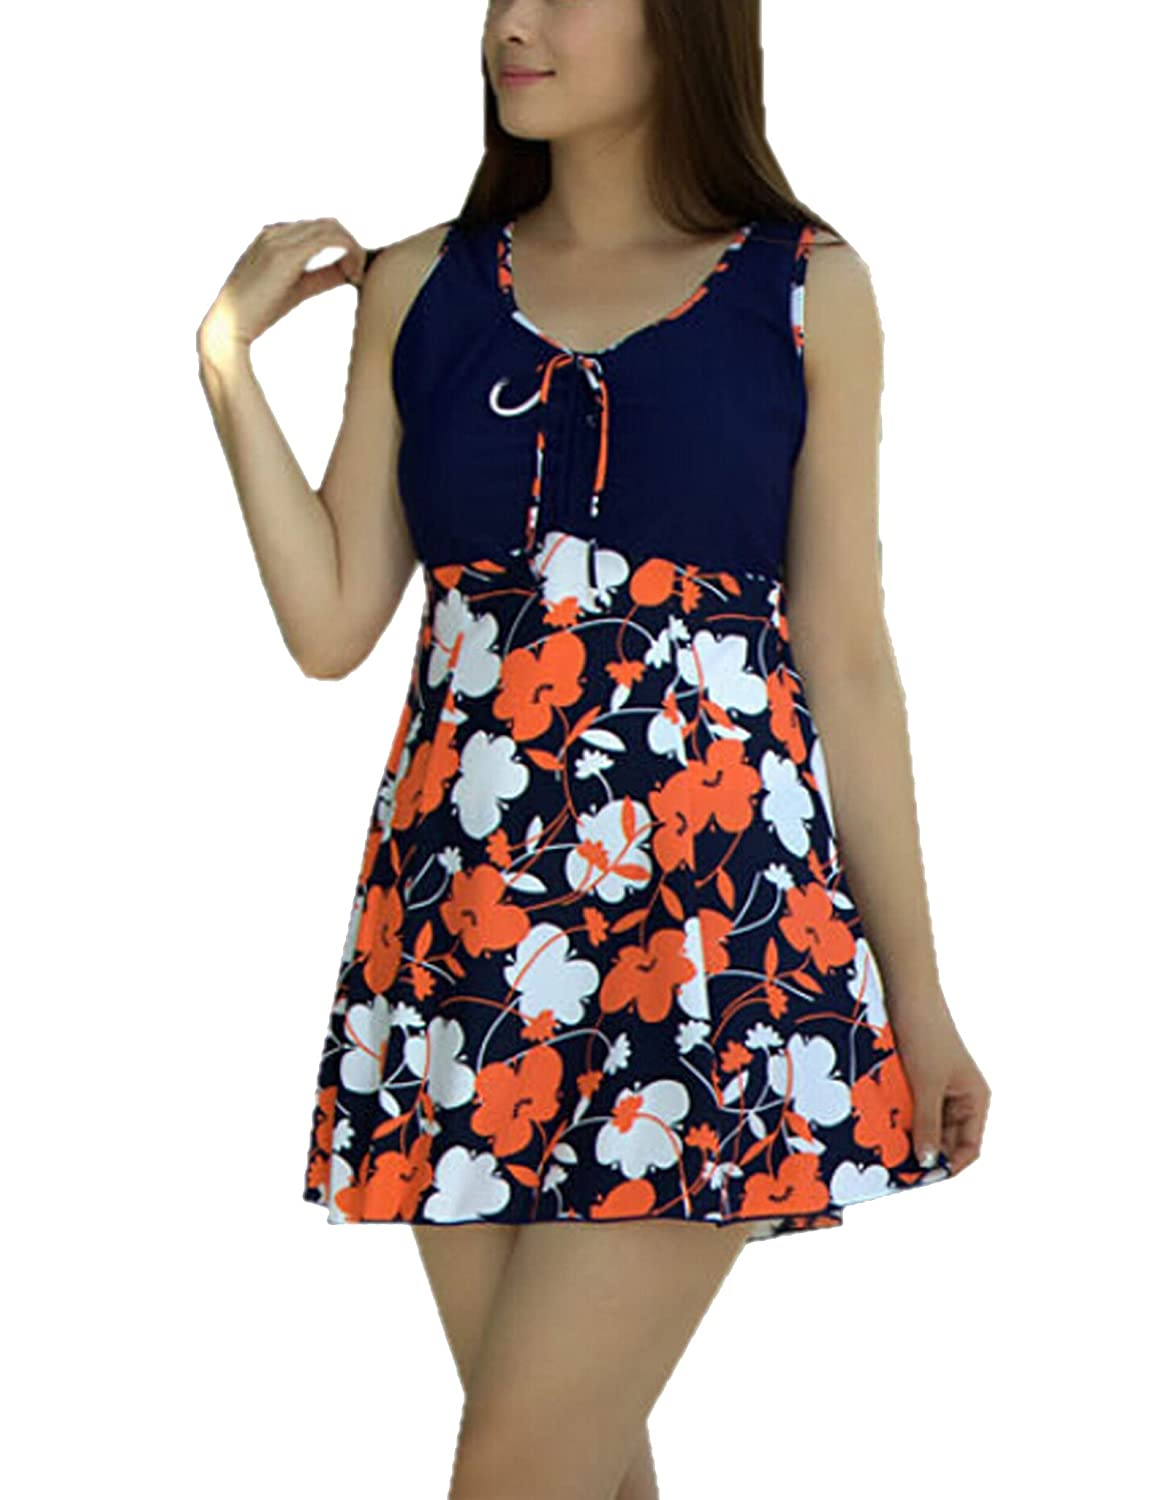 43c6380988 Features: Padding Bra,No Underwire,V Neck,Floral Printed, Elastic,One Piece  Swimdress with Boy Shorts under the skirt, Perfect for big busted,Tummy  control ...